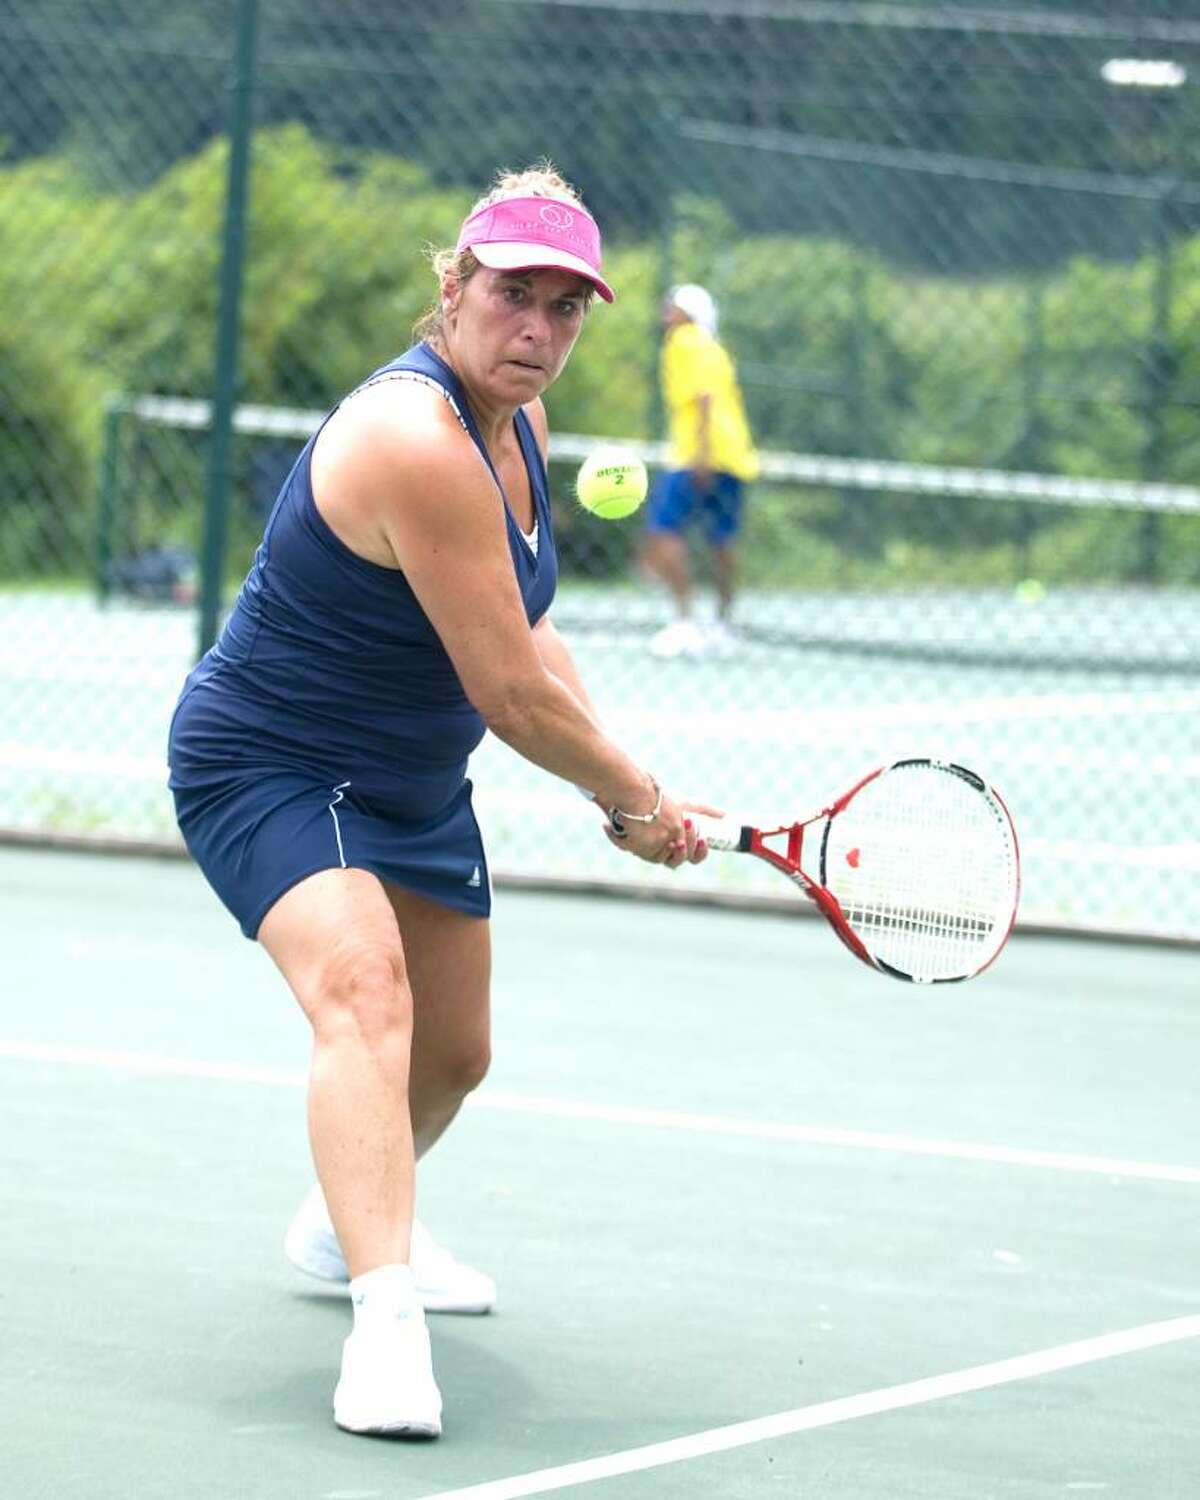 Sandra Atanasoff of Danbury hits a backhand return during her match against Cecily Koss of Southport in Danbury Open Tennis Tournament first round play Saturday at Wooster School in Danbury.